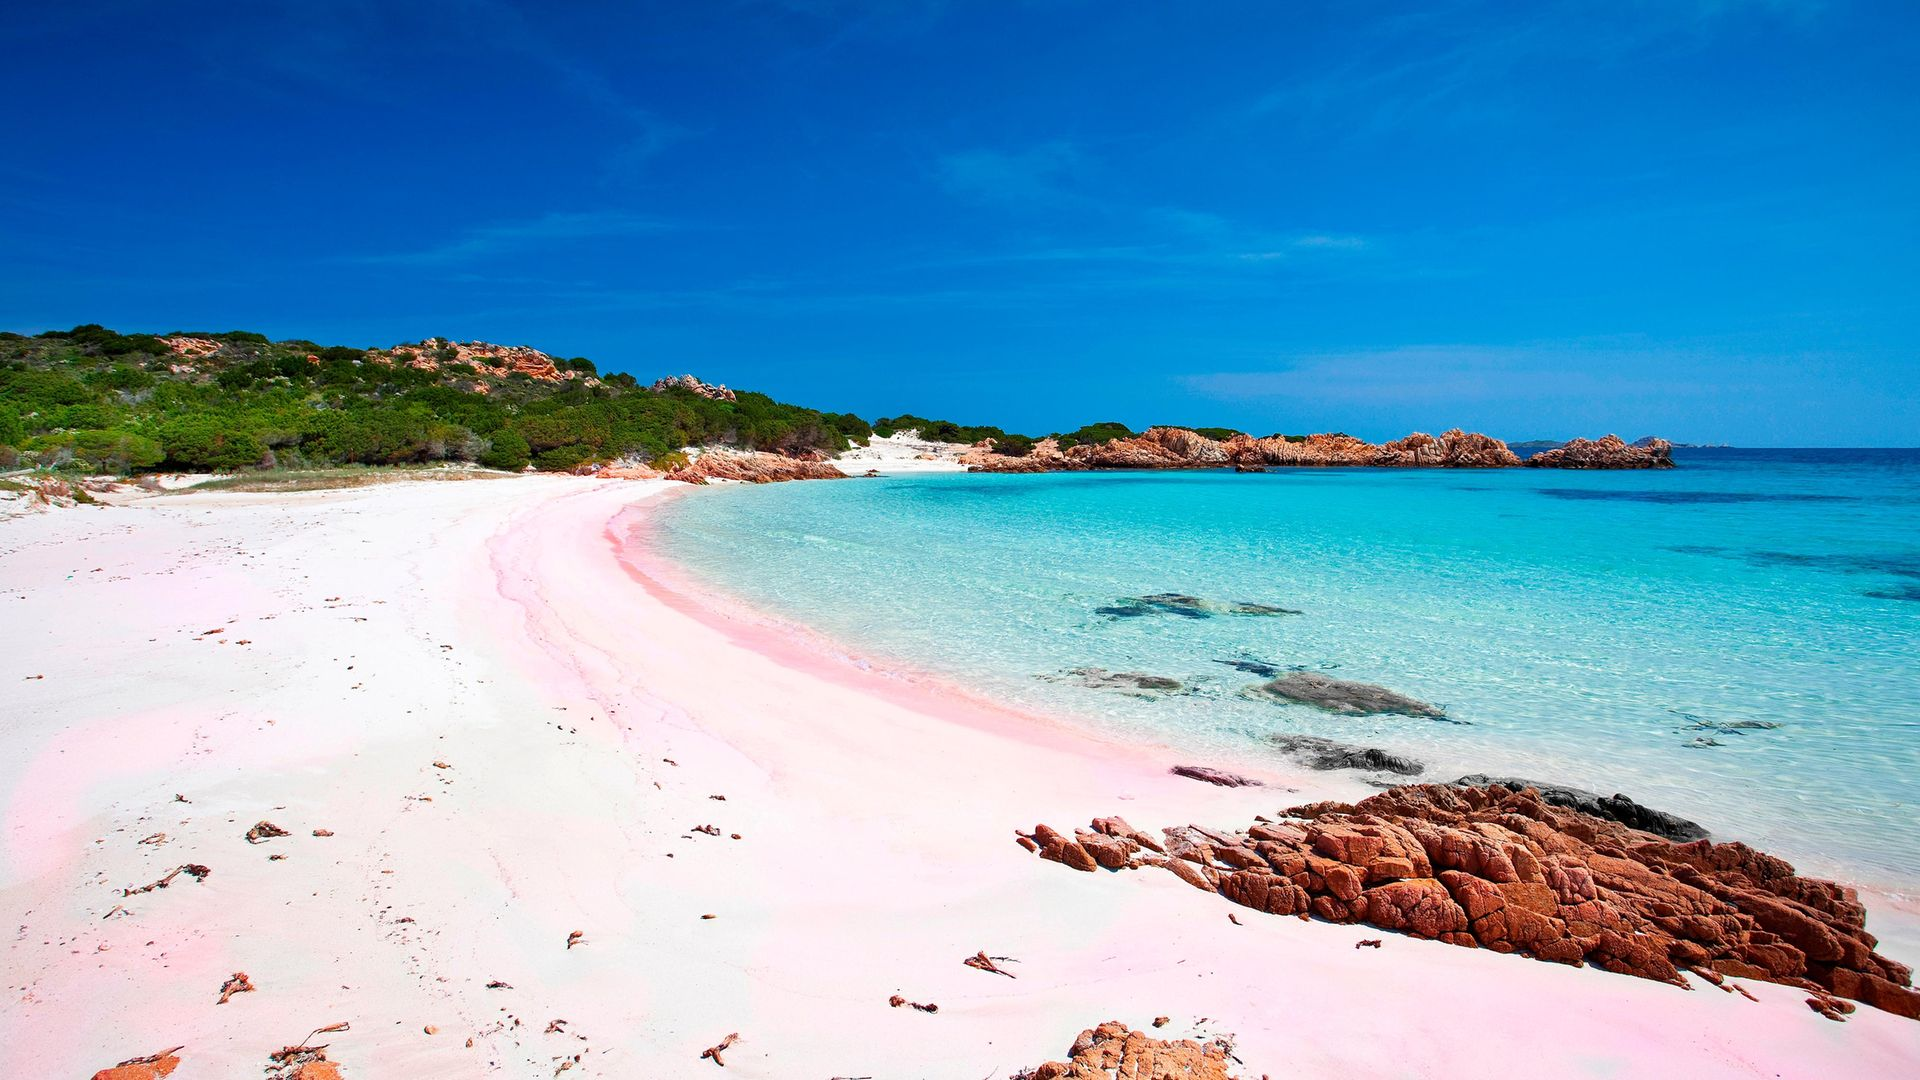 Budelli island, off Sardinia, where Mauro Marandi has lived alone for the past 30 years - Credit: Photo by: Luca Picciau/REDA&CO/Universal Images Group via Getty Images